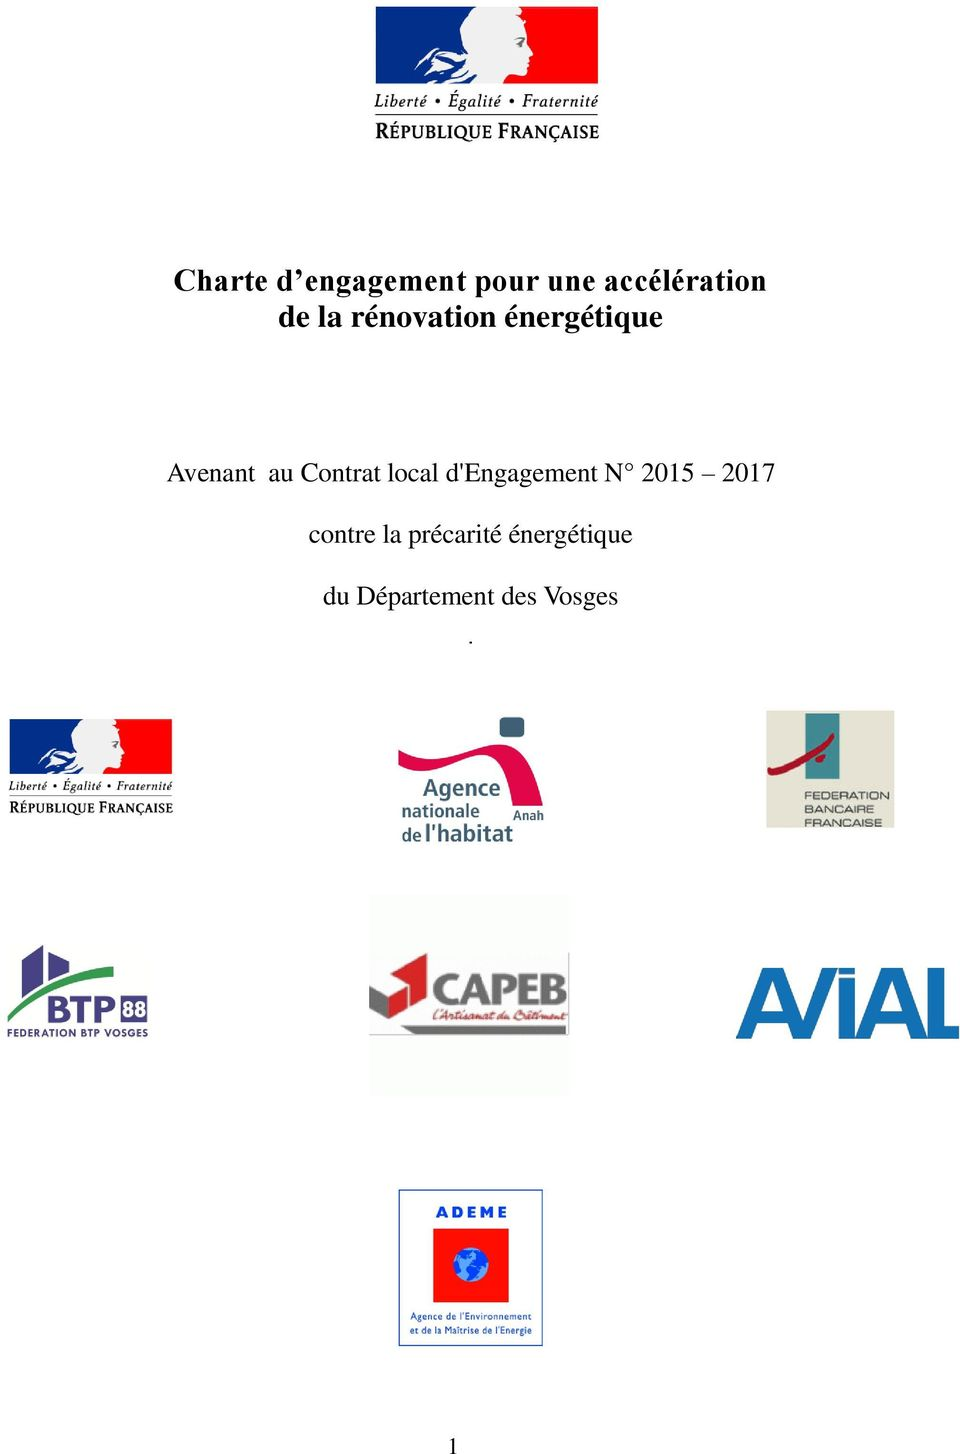 local d'engagement N 2015 2017 contre la